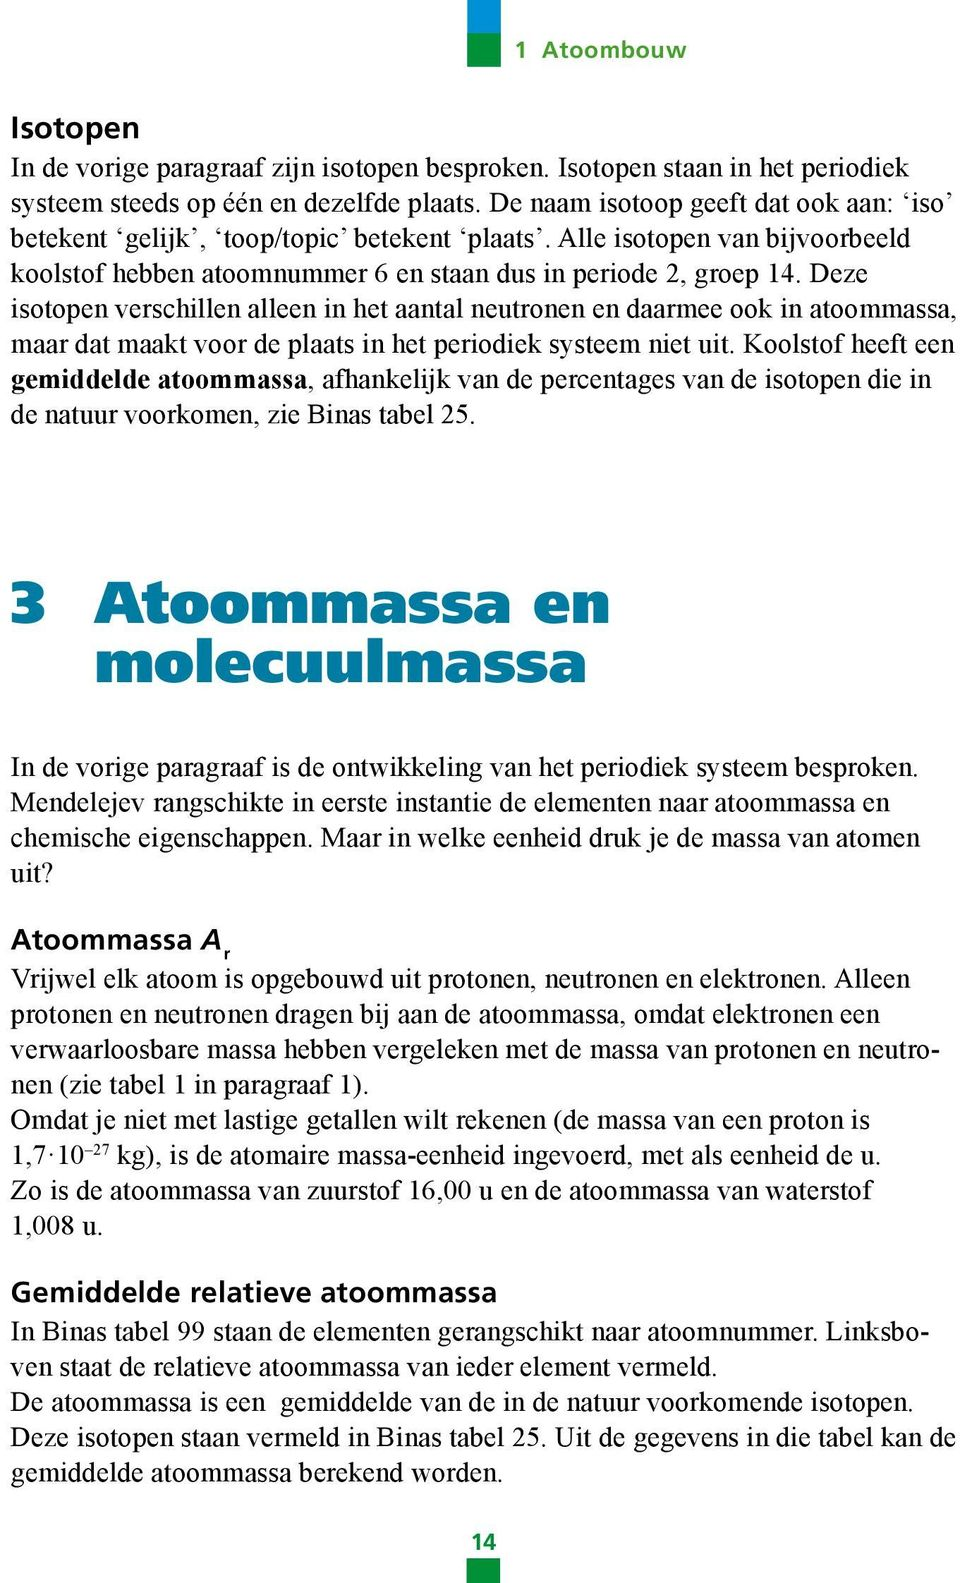 Scheikunde zakboek havo pdf for Binas tabel 99